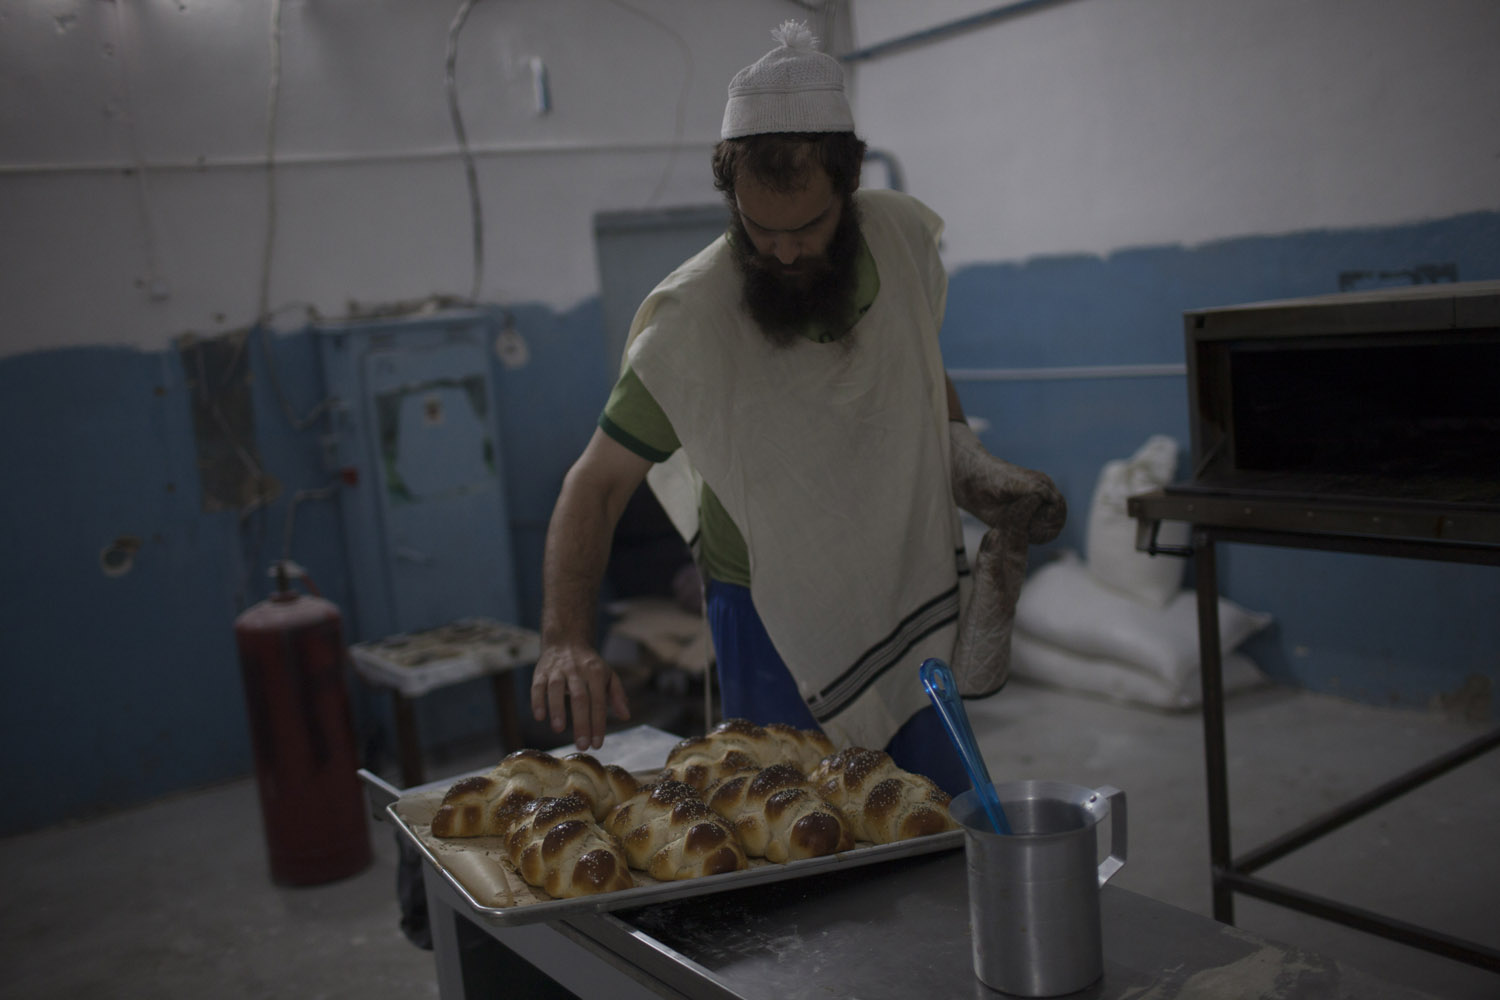 Aaron bakes challah in his Brooklyn Bakery in Uzhgorod. He grew up in a Jewish neighbourhood of New York and then moved here with his wife. He is fascinated by the region's Jewish heritage, and looks forward to showing his father that it is still possible to live a Jewish life here.